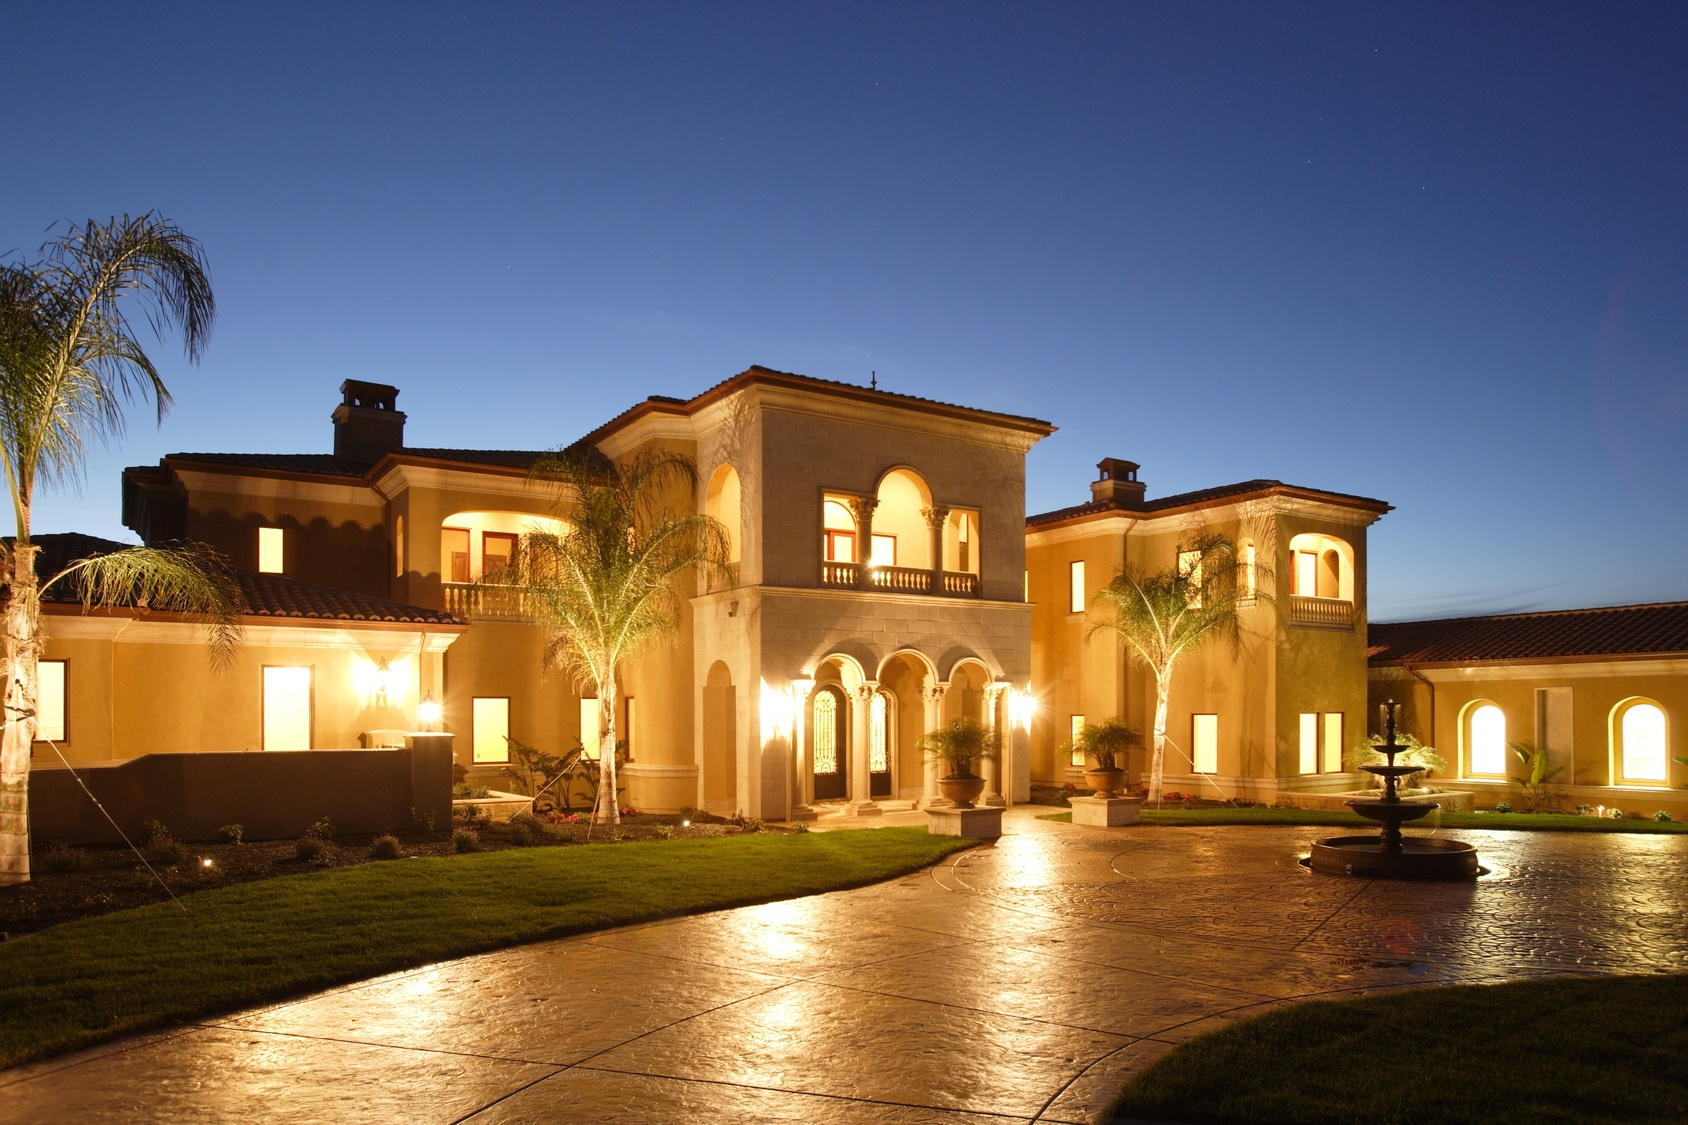 Orlando area home styles mediterranean villas to high for Luxury home architects